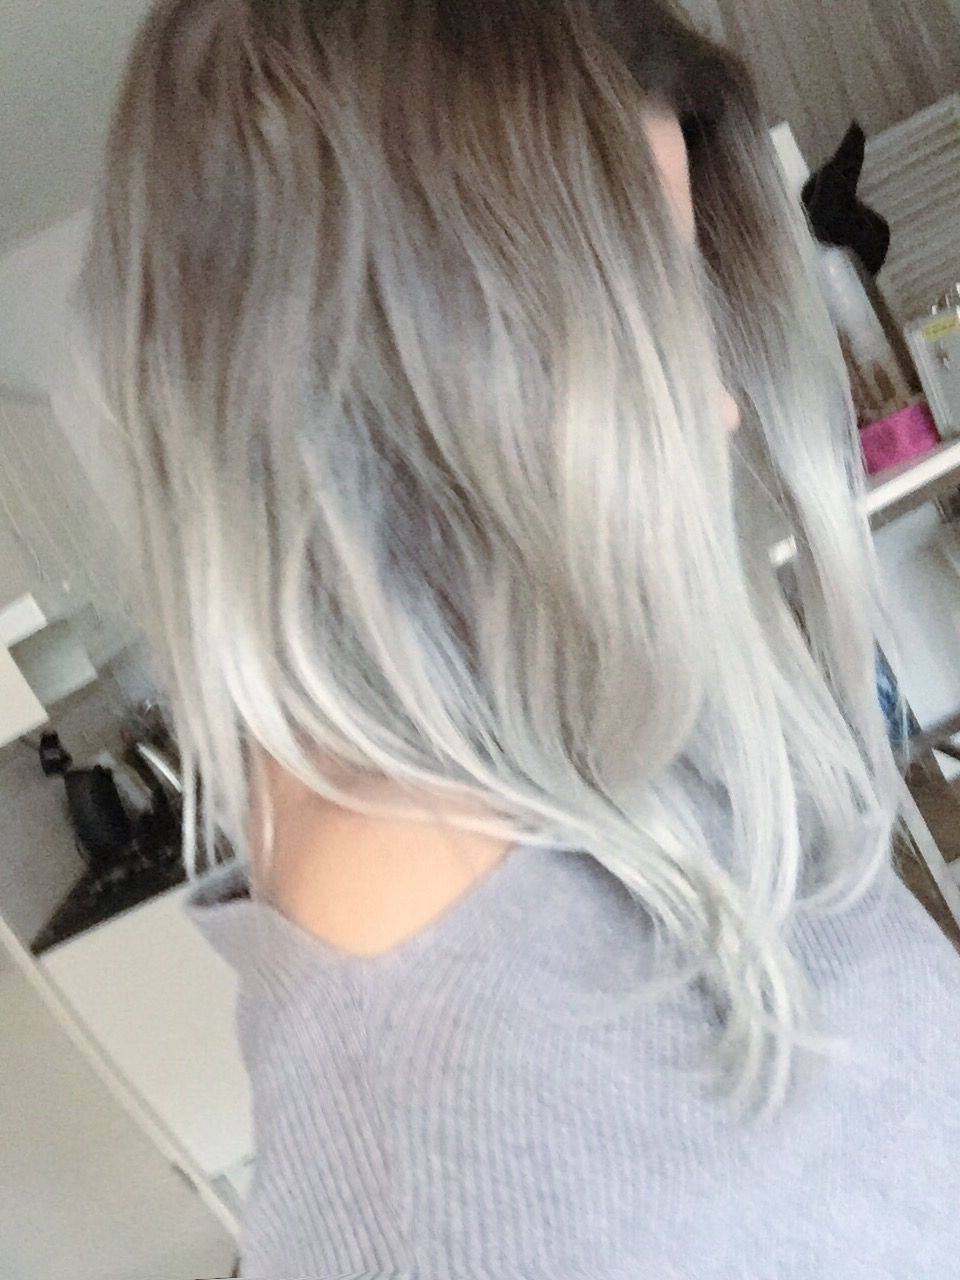 Grey / Silver Hair: Dark Grey Roots And Light Silver, Platinum Regarding Most Current Grayscale Ombre Blonde Hairstyles (View 2 of 20)